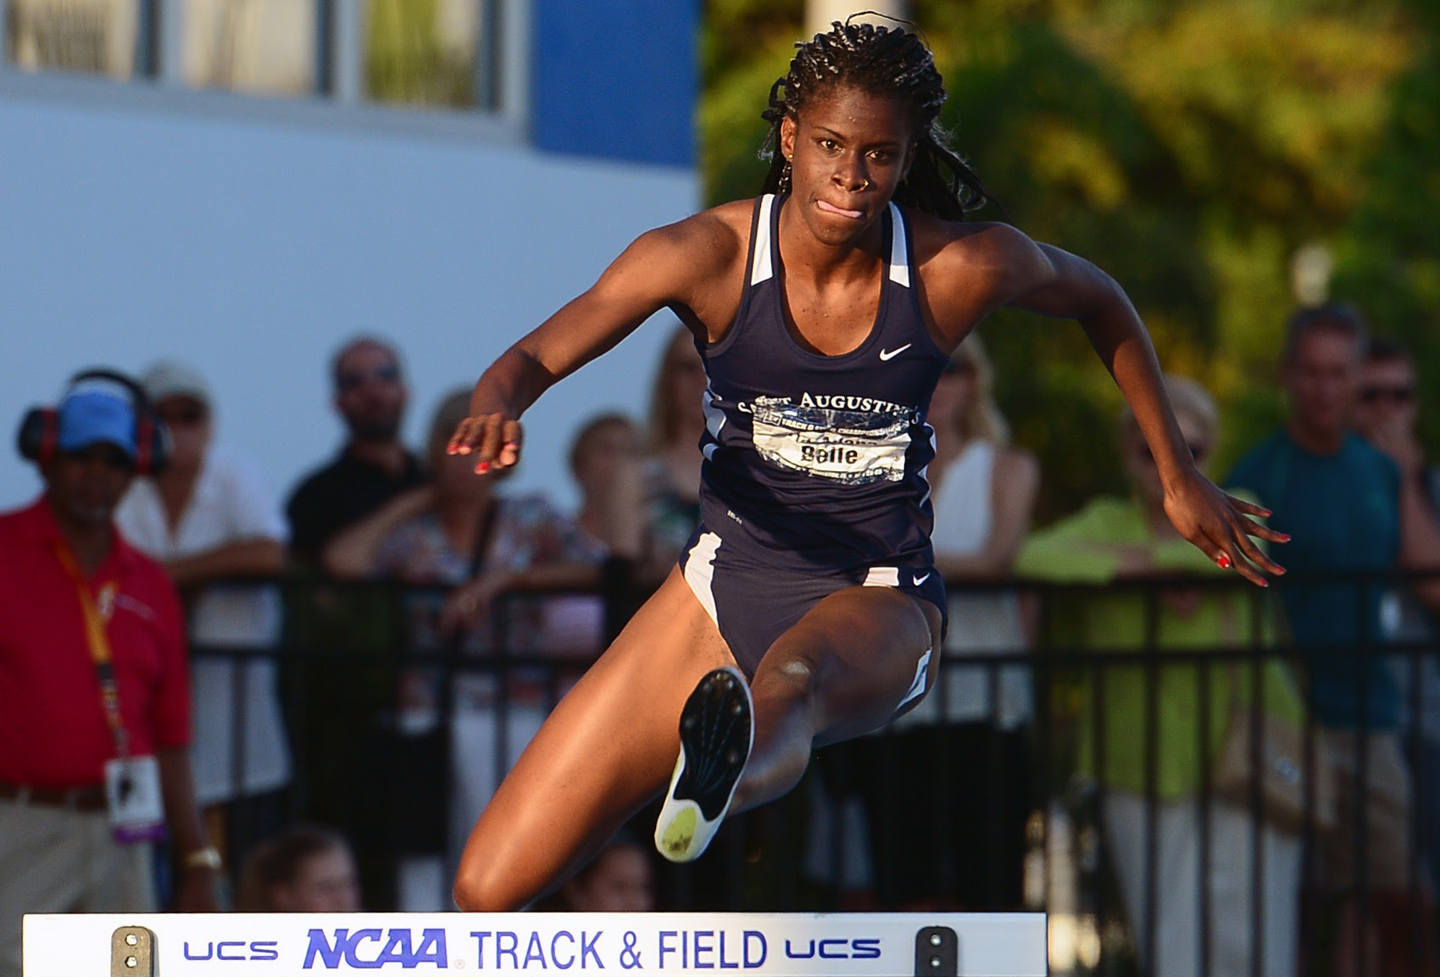 St .Augustine's Tia-Adana Belle gets over a hurdle while running the 400 meters hurdles finals during the NCAA DII Track and Field Championships on May 28, 2016 in Bradenton, Florida, at the IMG Academy.